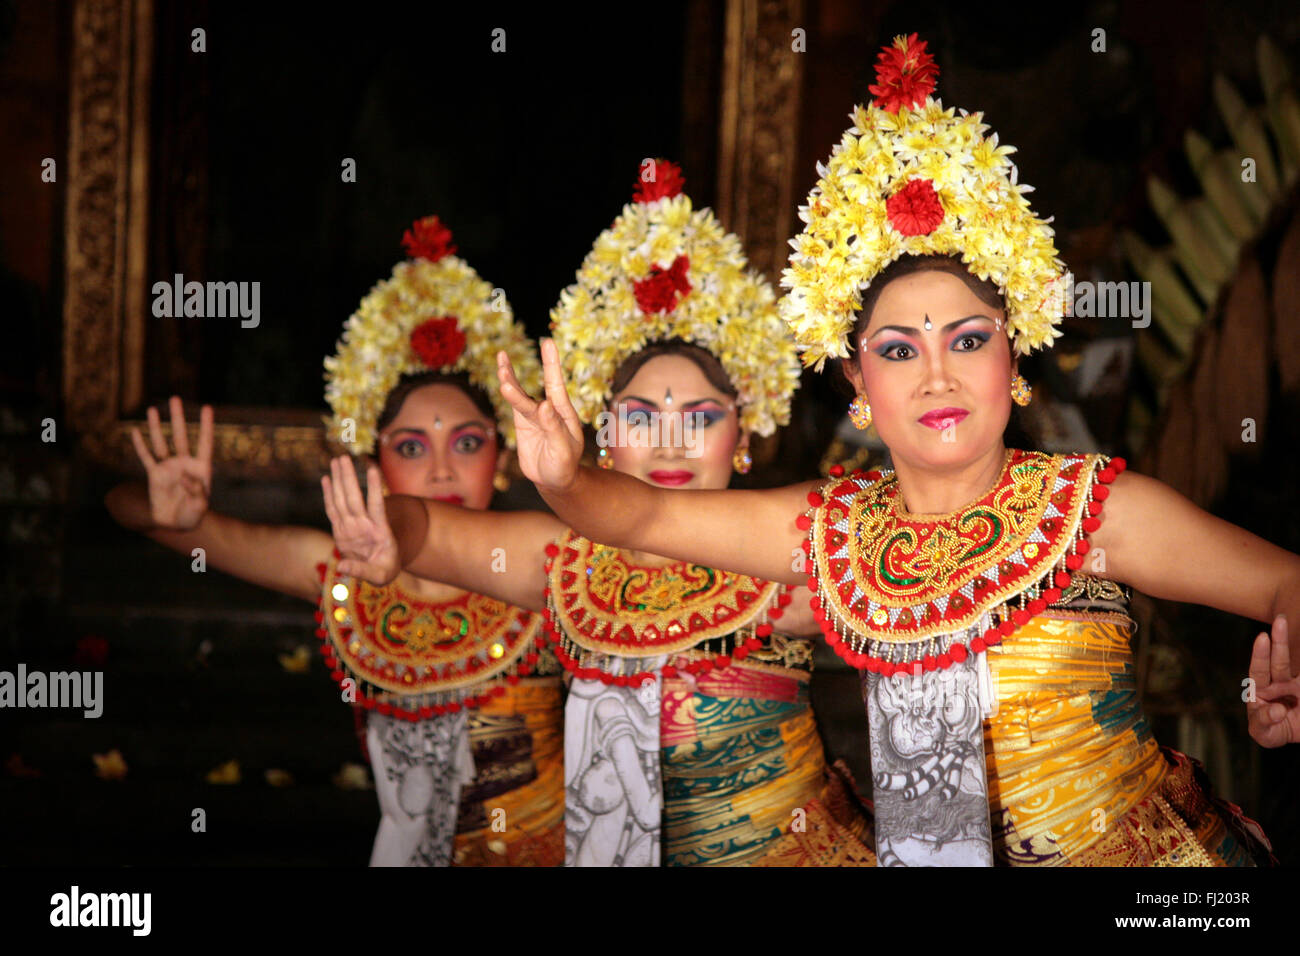 A barong dance performance at outdoor theater at night in Ubud, Bali, Indonesia - Stock Image